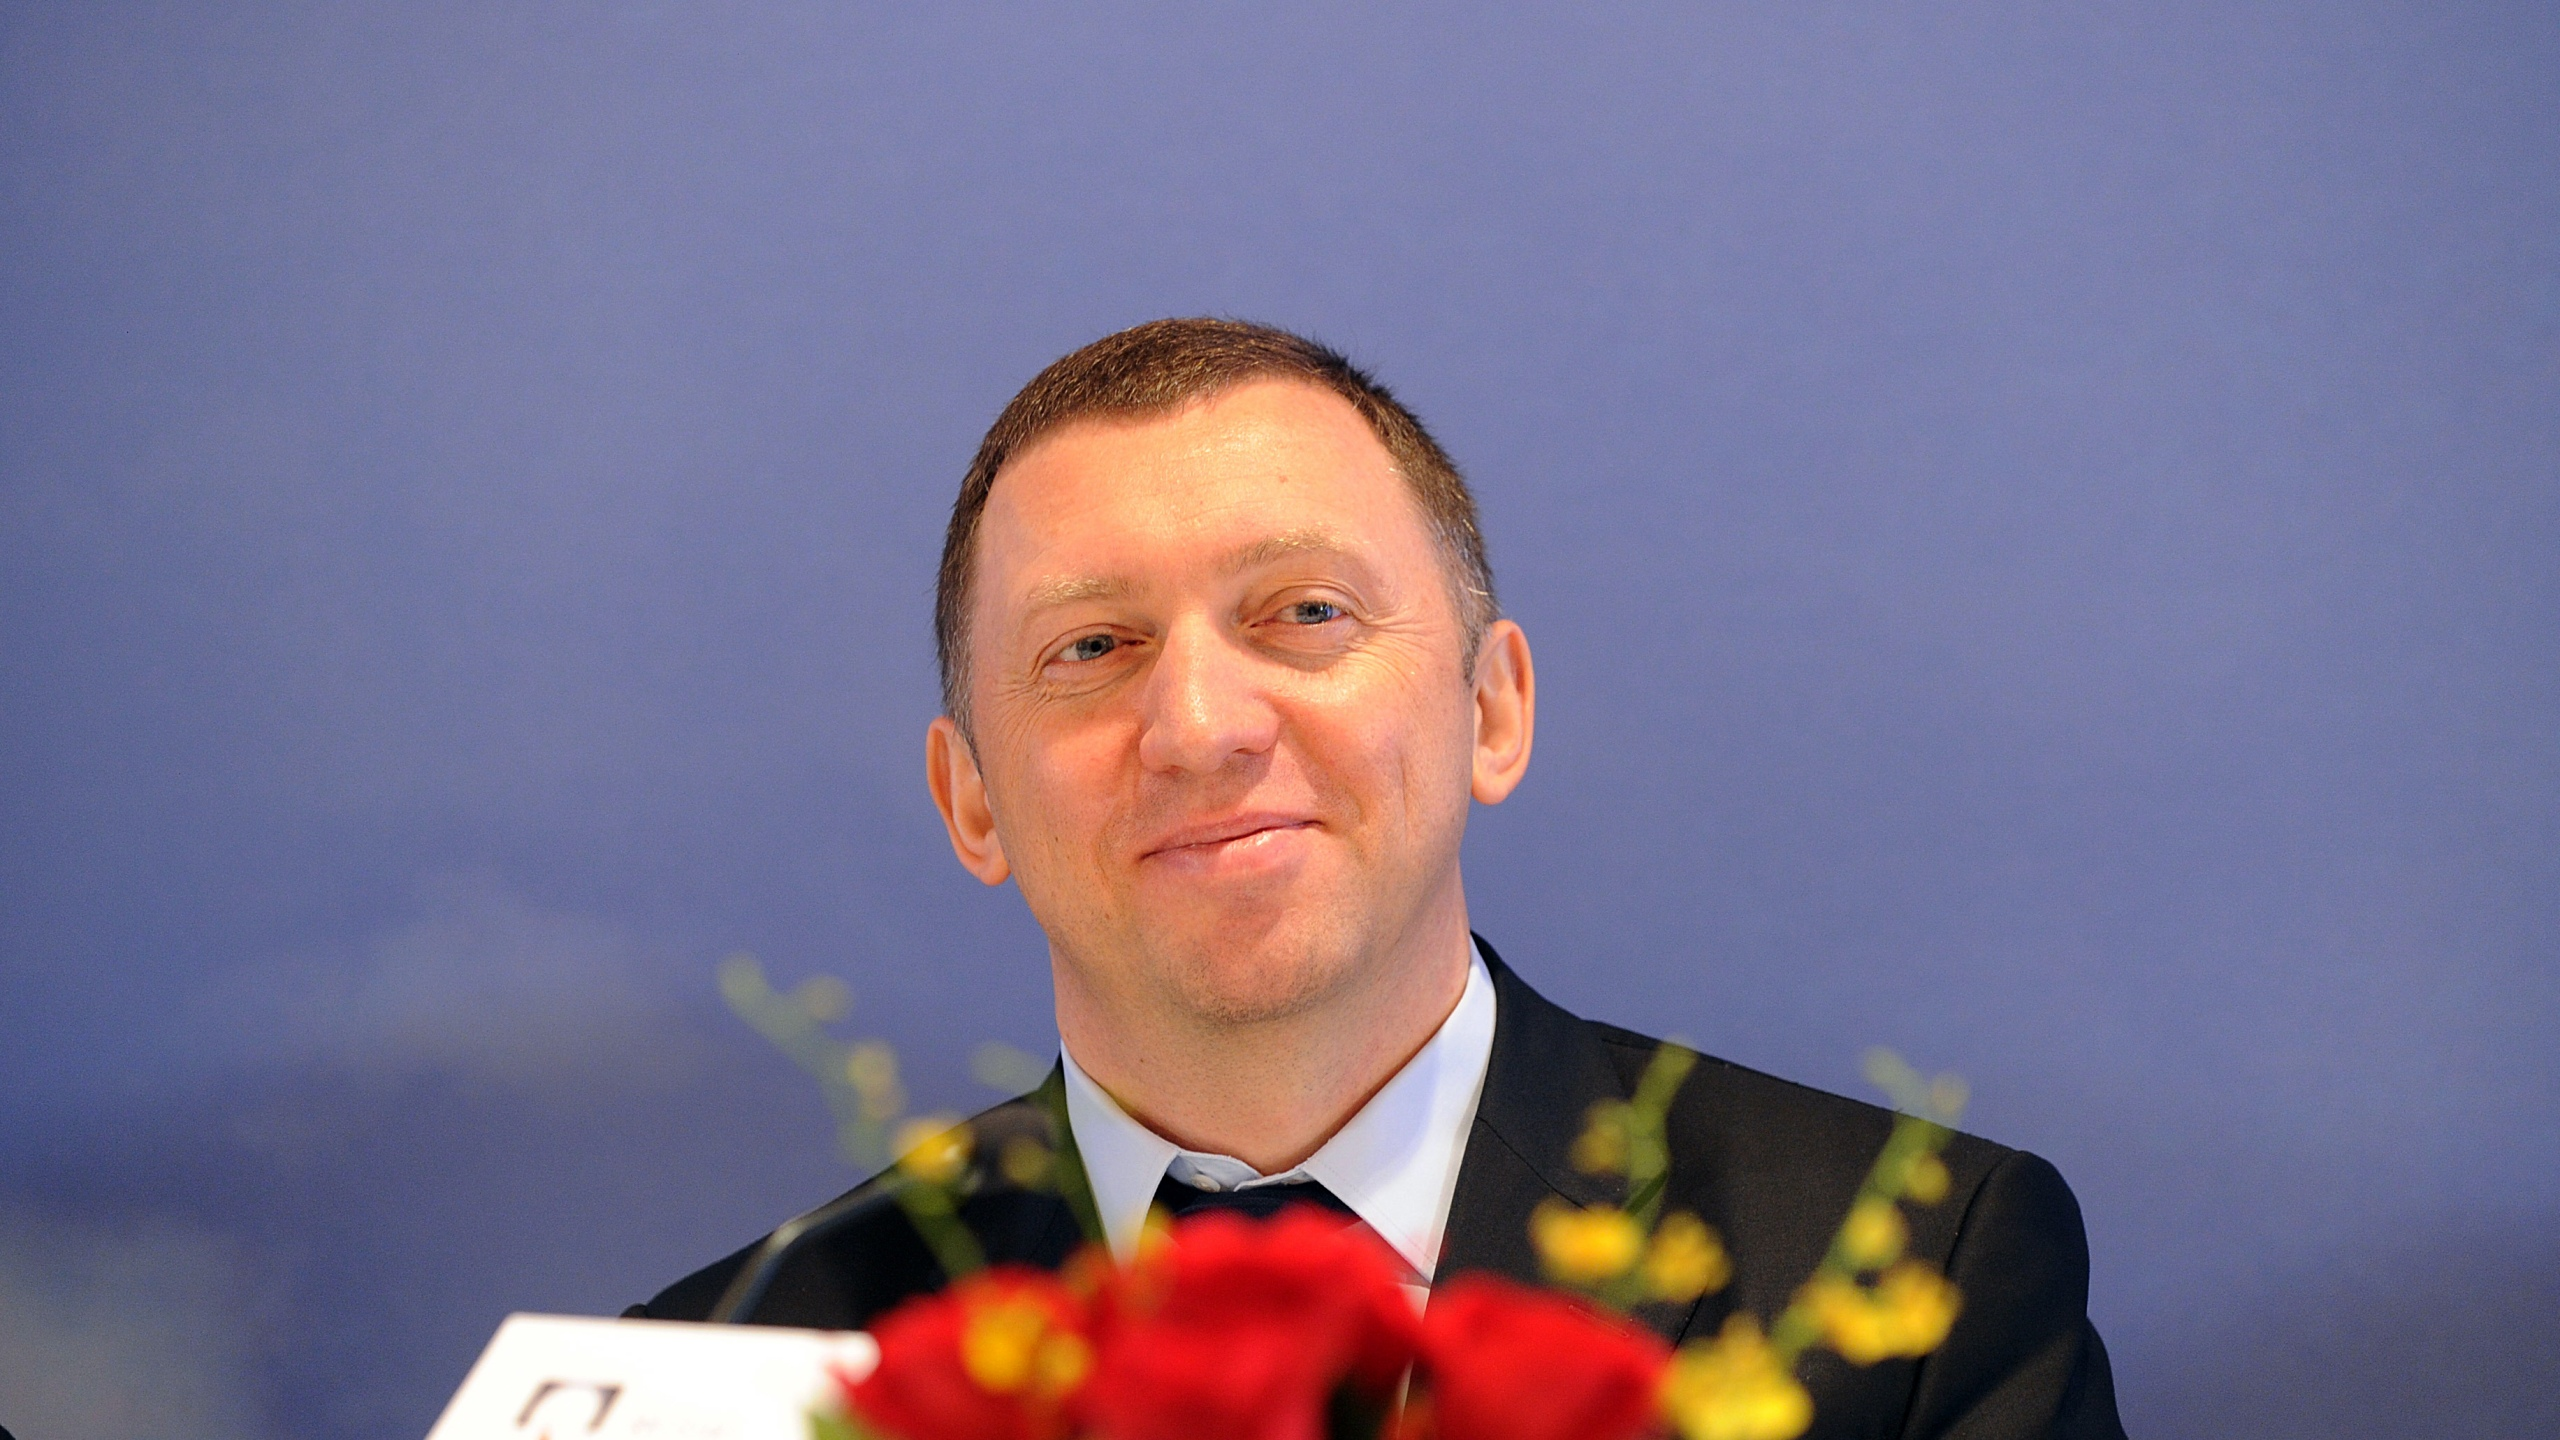 Oleg Deripaska, CEO of Russian metals giant UC Rusal, smiles during a press conference to announce the company's 2009 annual results in Hong Kong on April 12, 2009. (Credit: MIKE CLARKE/AFP/Getty Images)